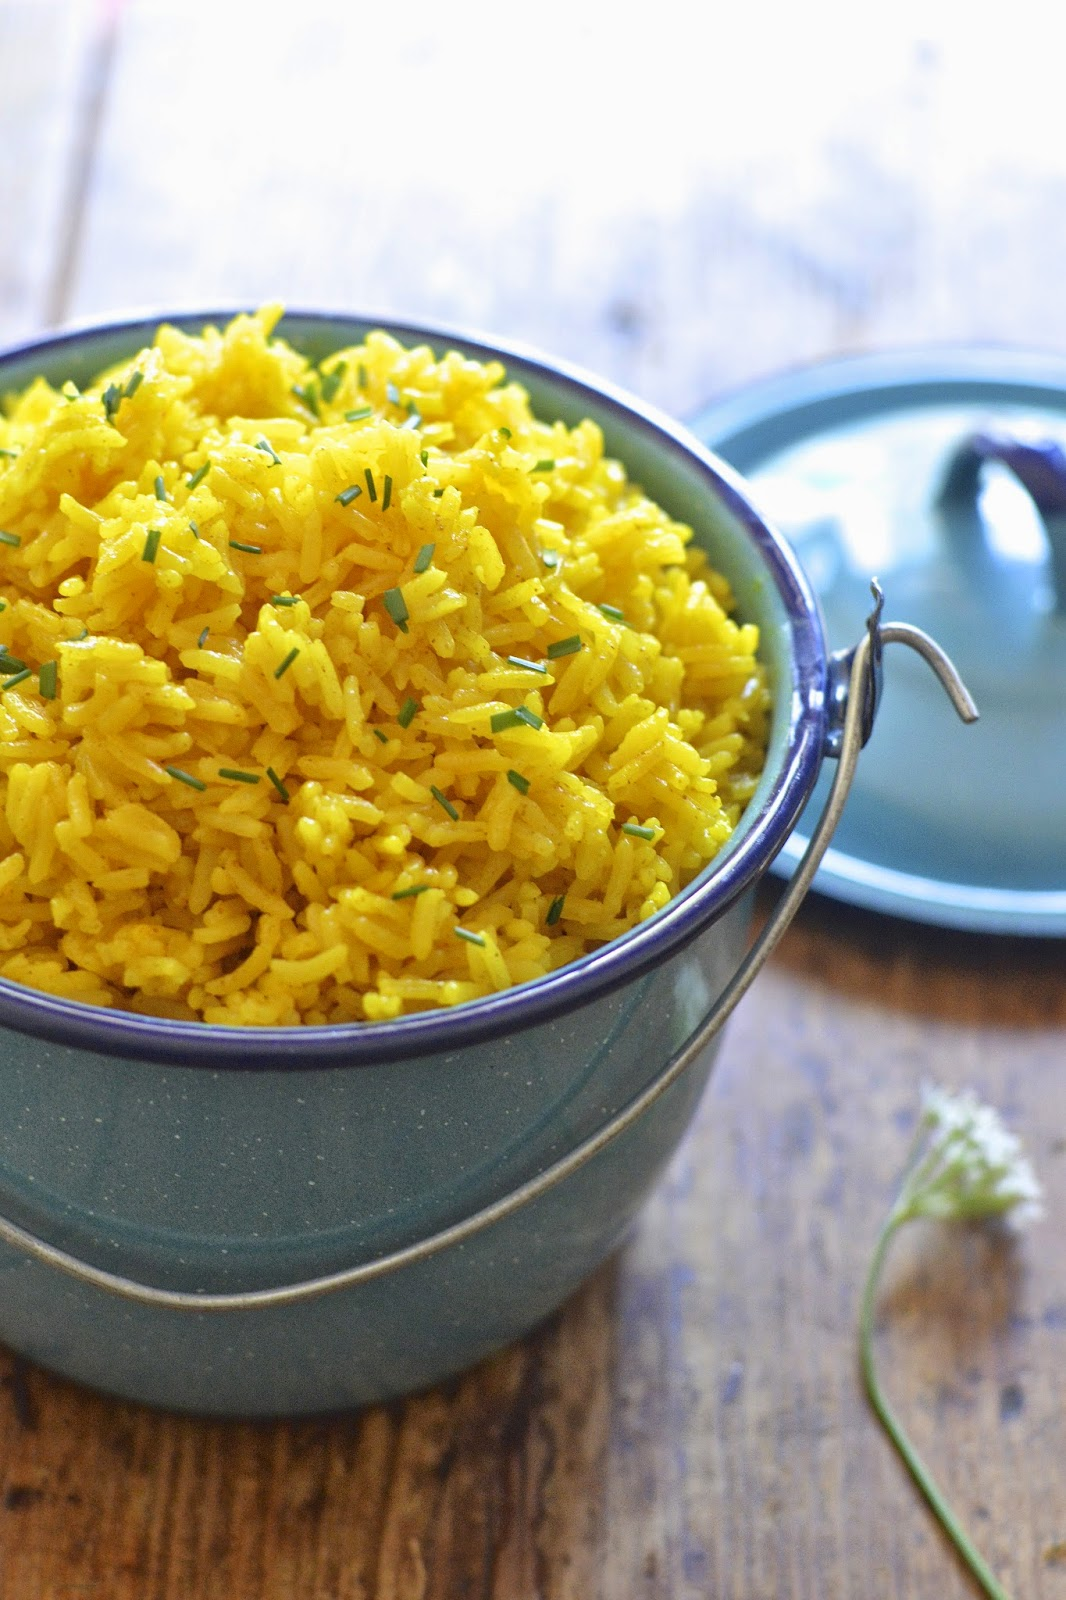 This easy yellow rice is flavored with turmeric and is ready in under 20 minutes